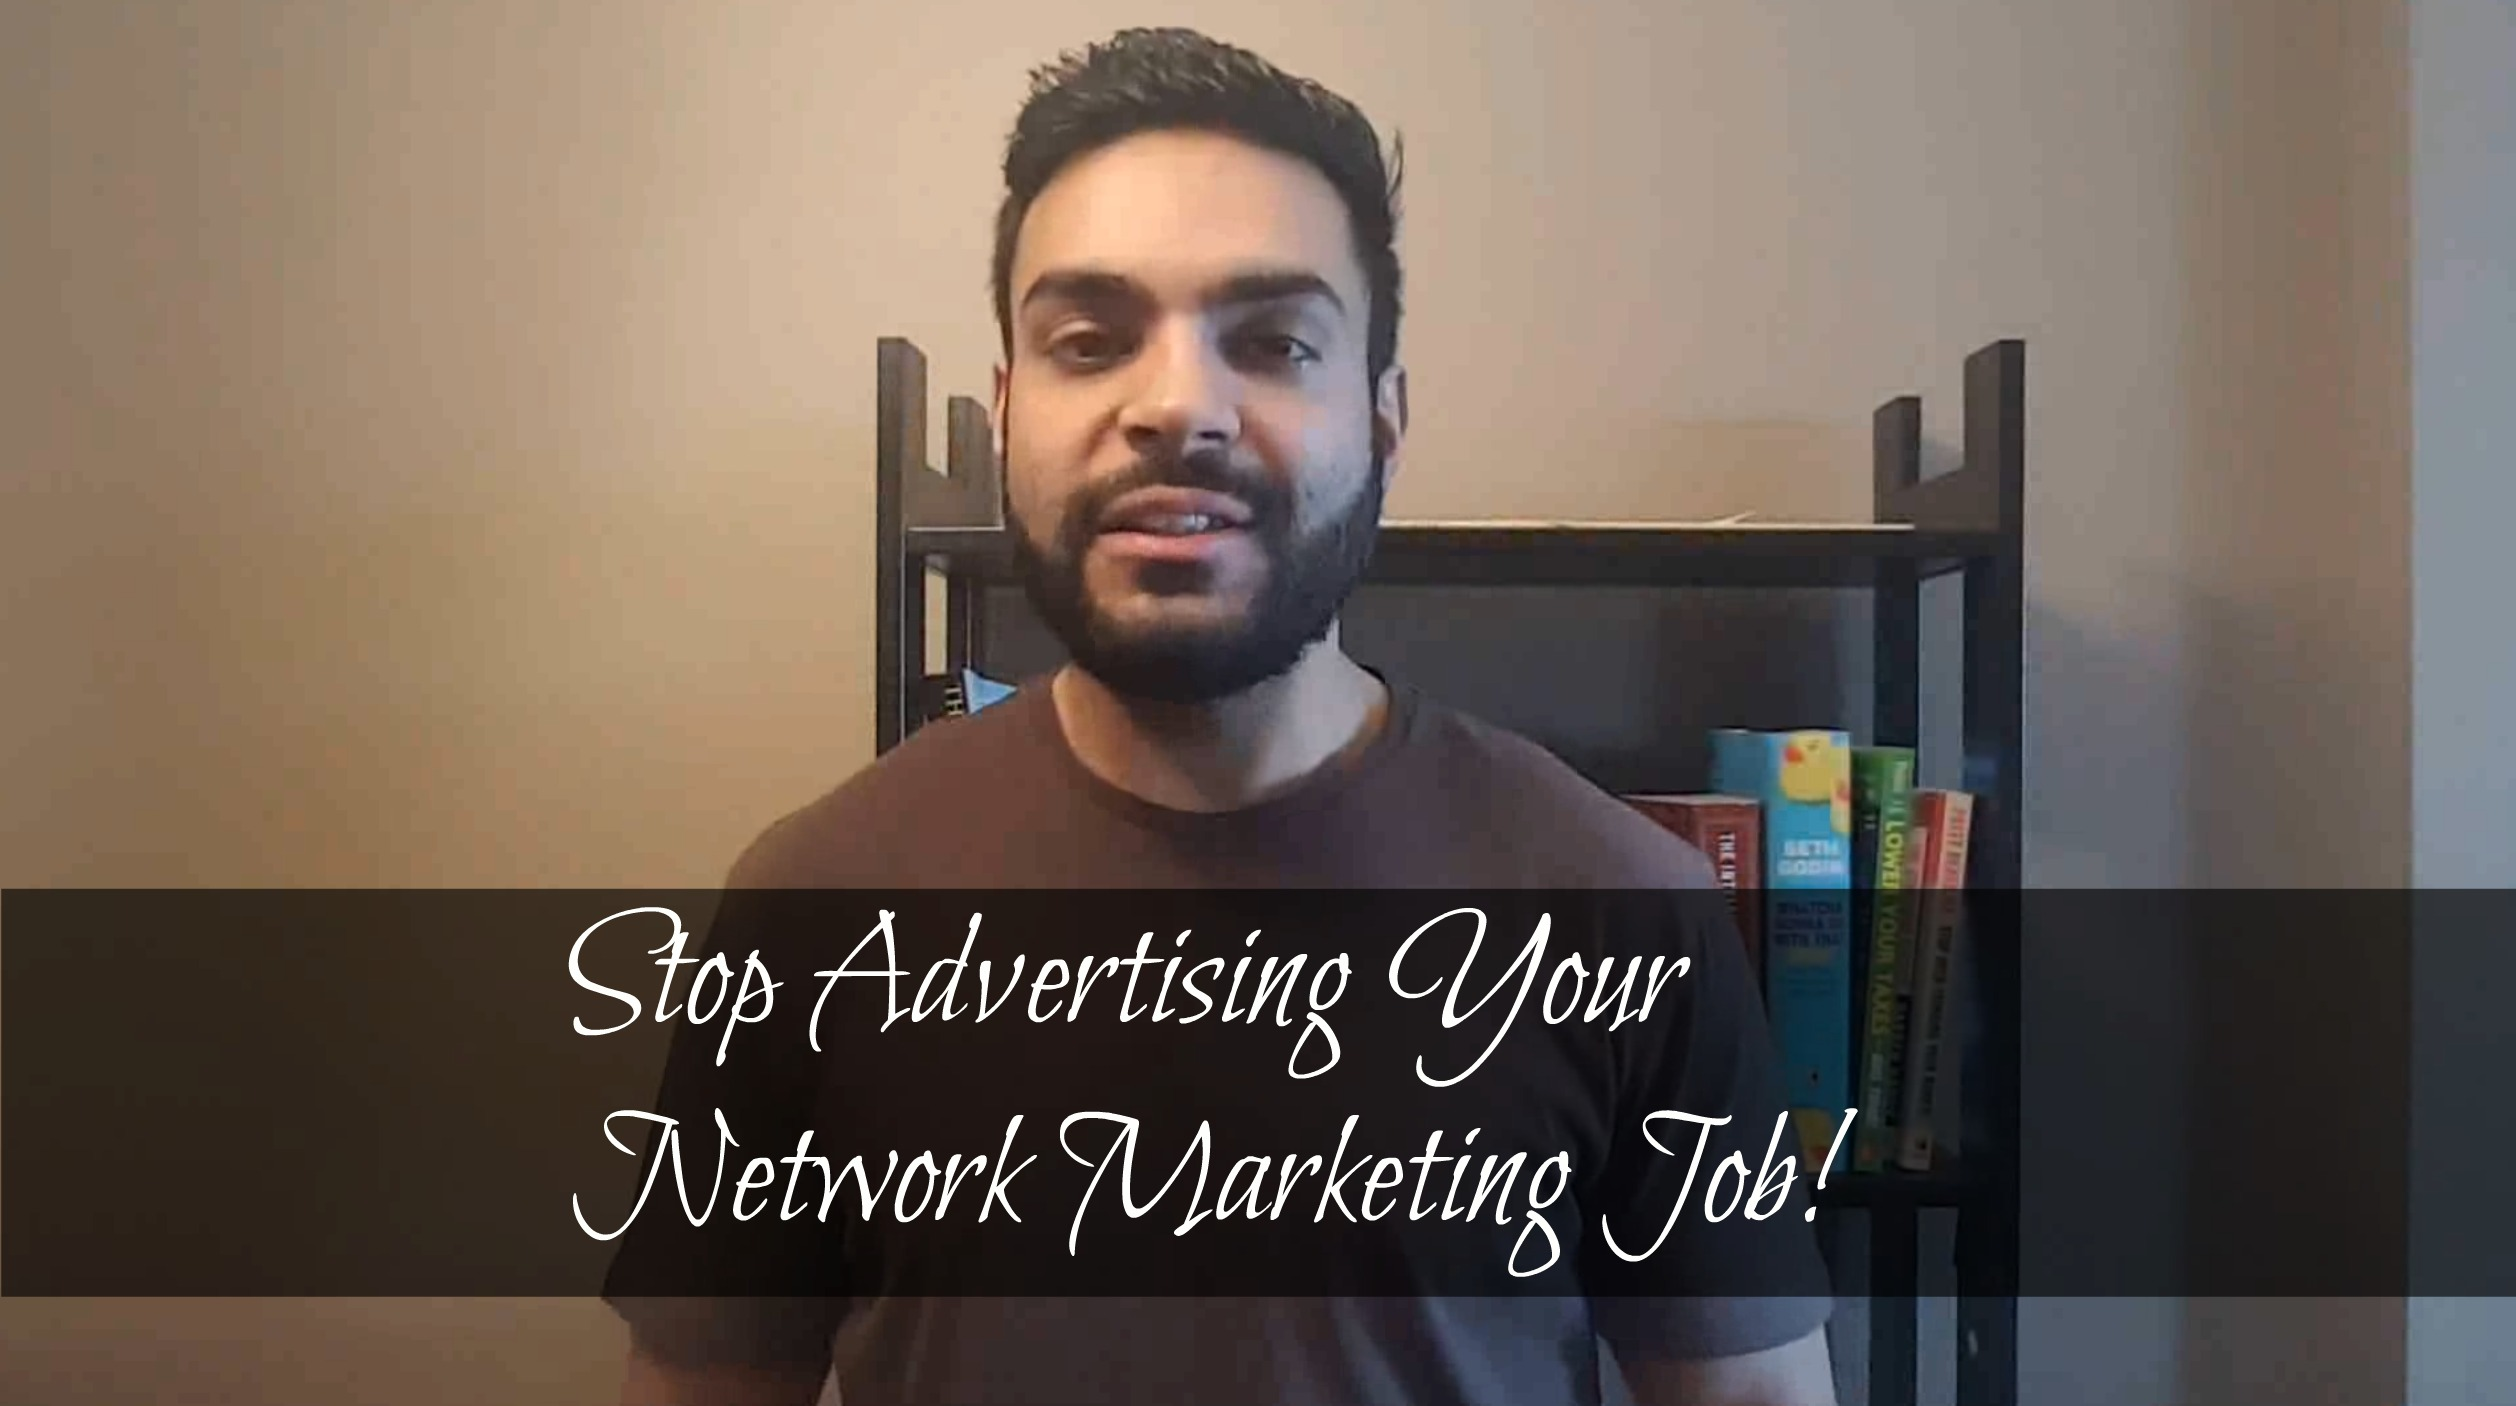 MLM Mistakes – Advertising Your Network Marketing Job!